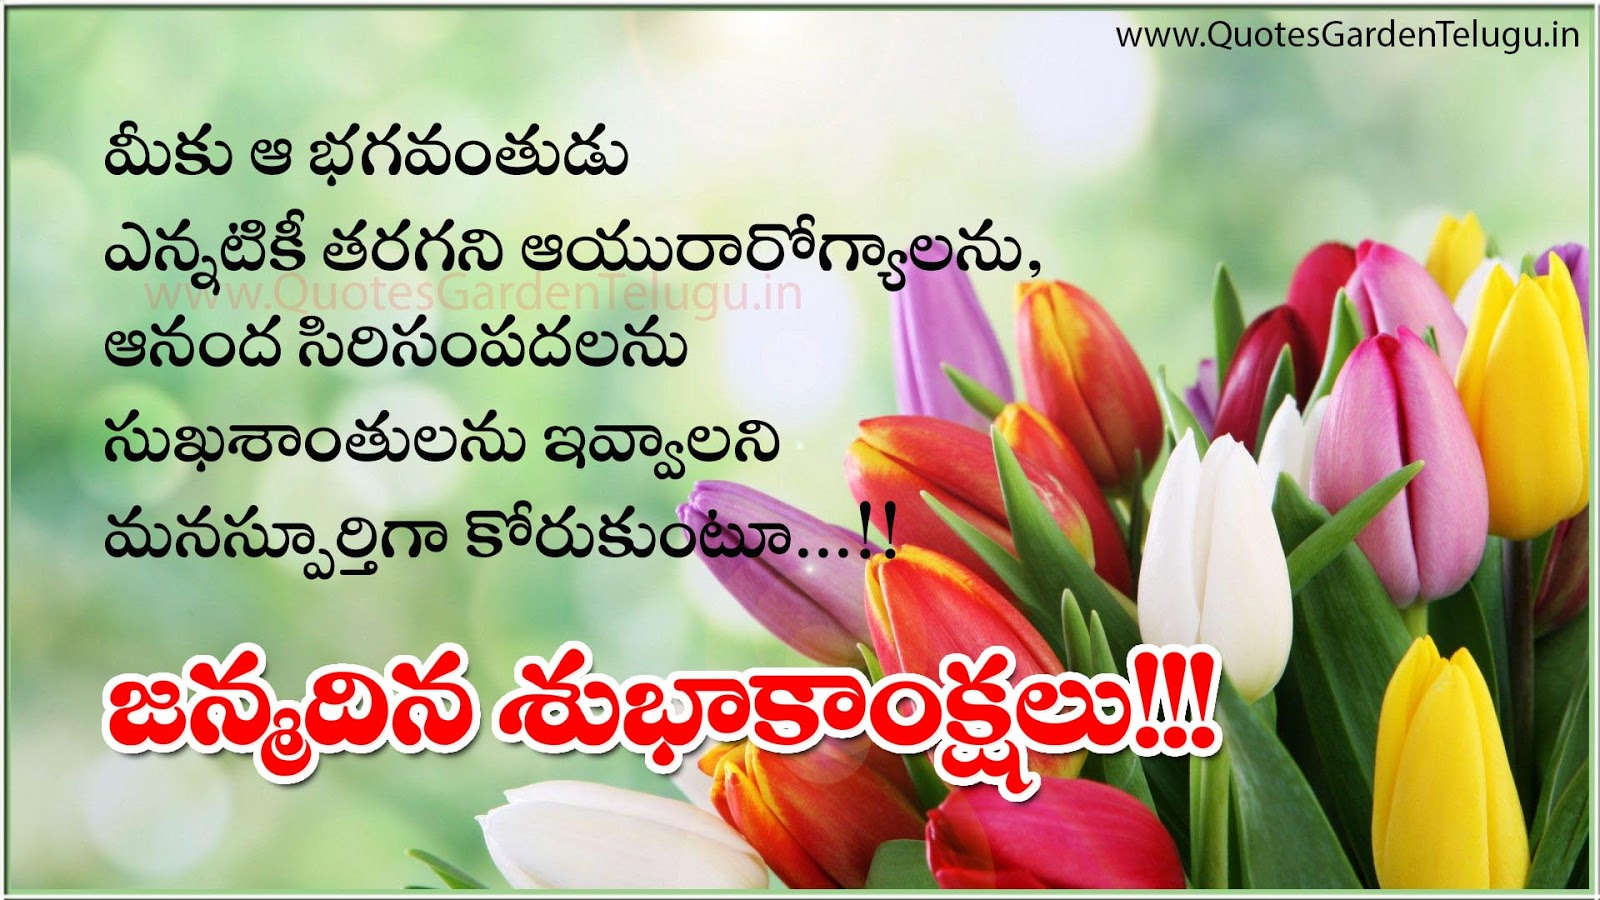 Pleasing Telugu Happy Birthday Greetings Wishes Quotes Garden Telugu Personalised Birthday Cards Veneteletsinfo